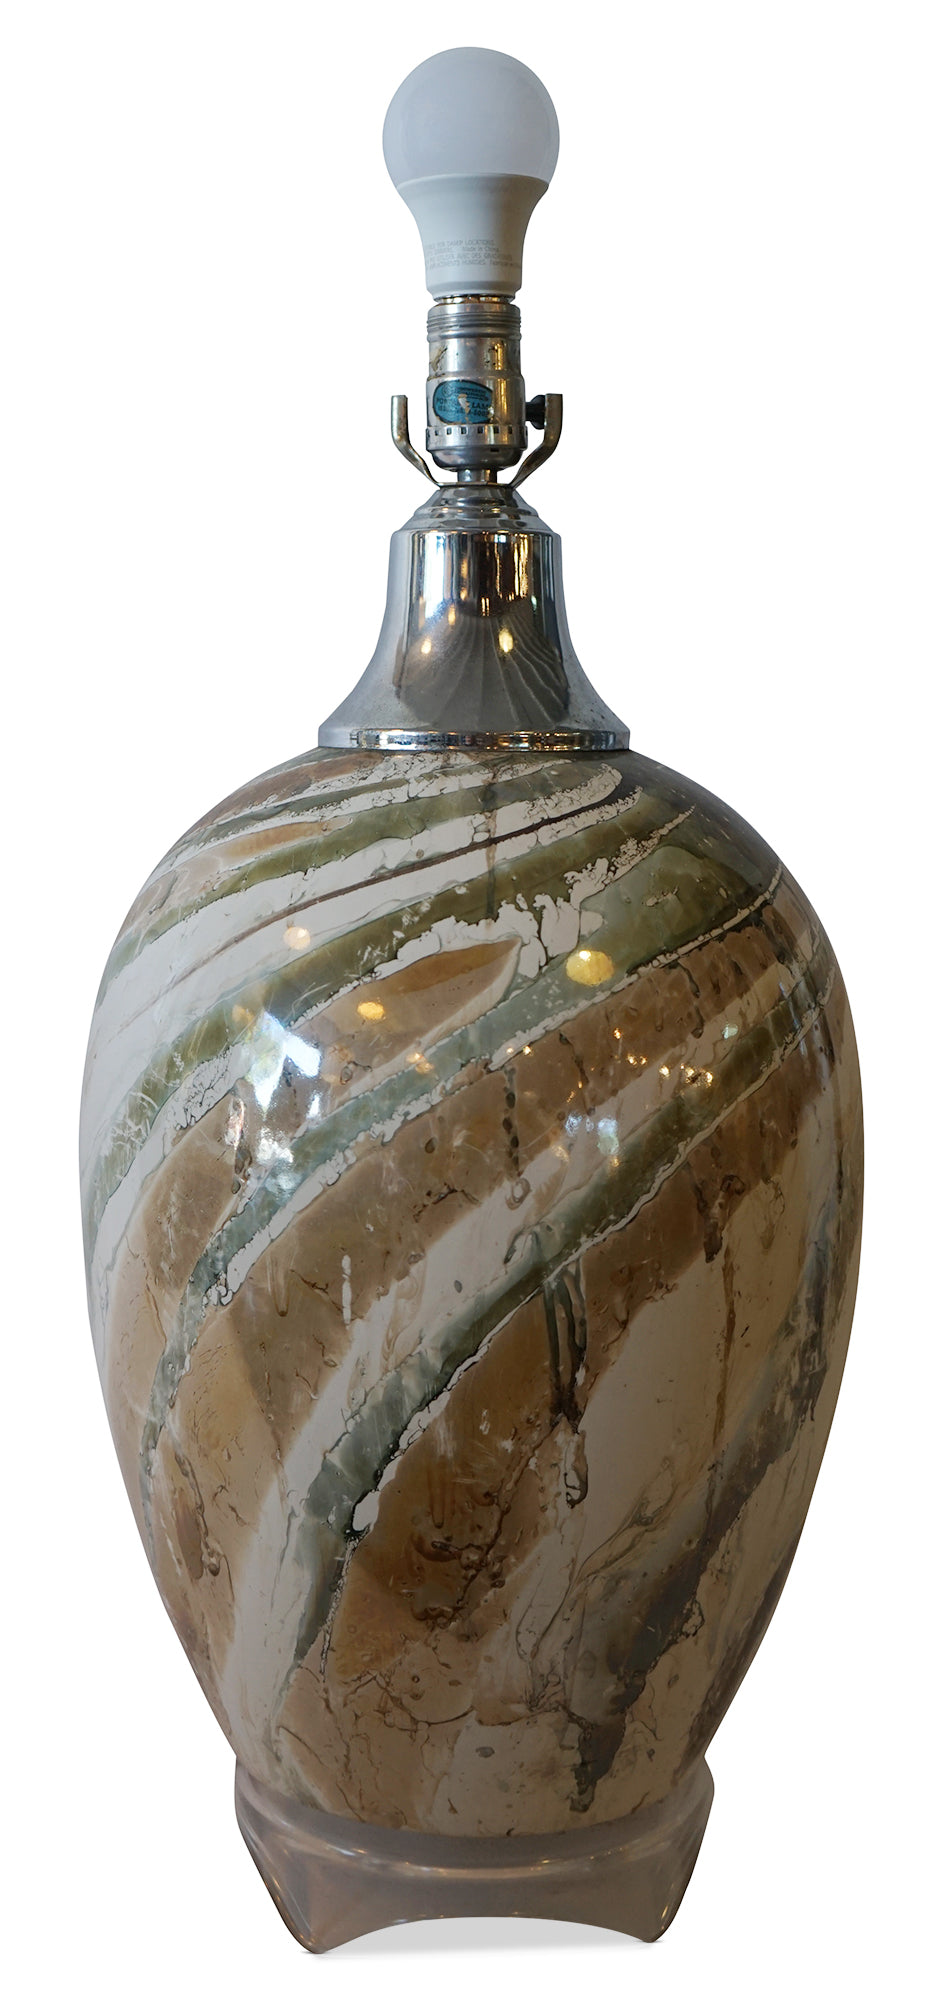 Marbled Glass Lamp